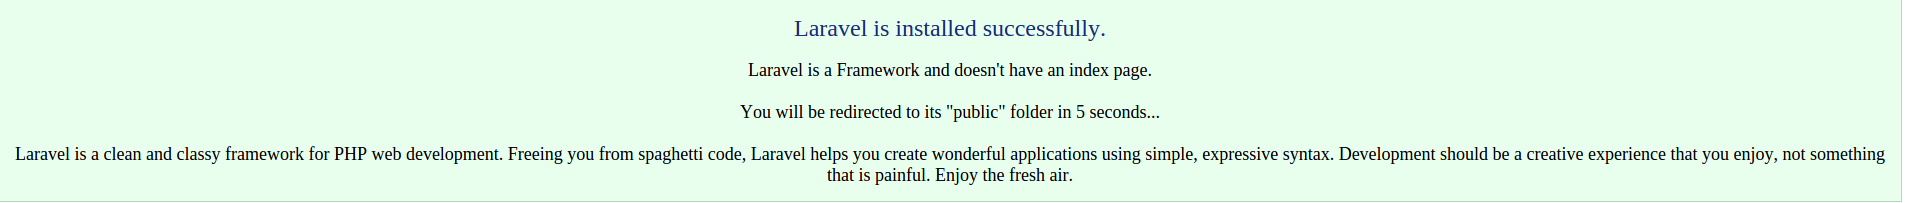 Setup Laravel Application from cPanel (Linux standard cloud